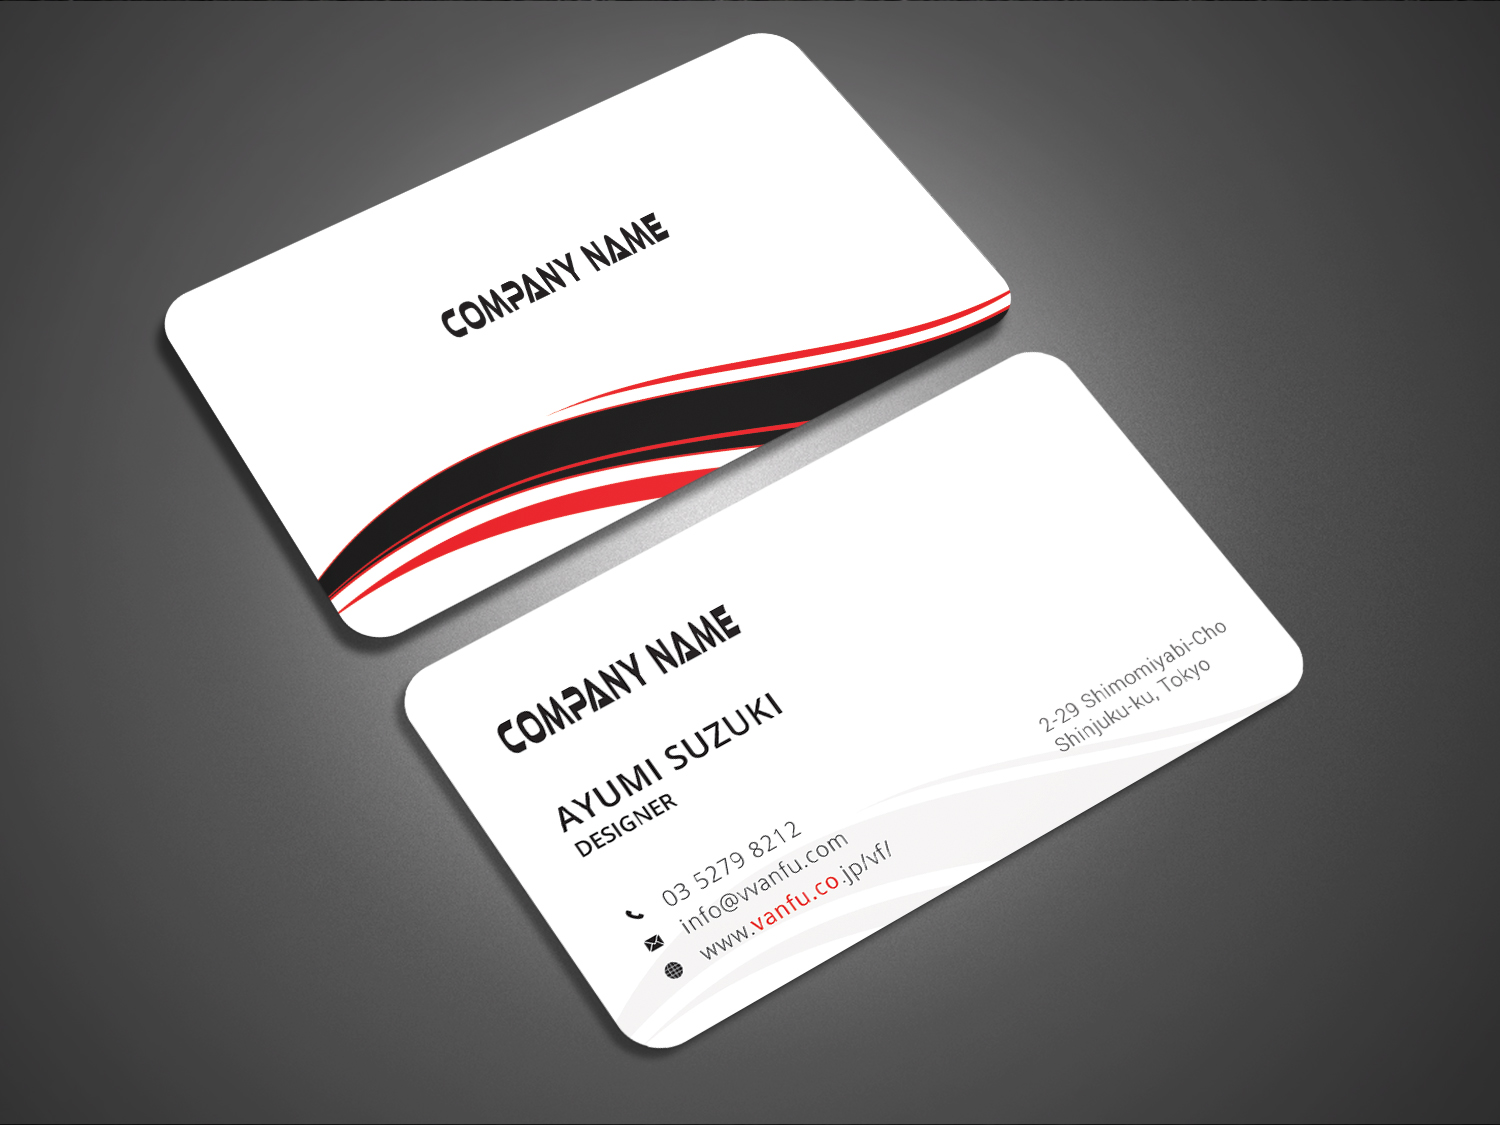 Elegant playful printing business card design for vanfu inc by business card design by graphic flame for vanfu inc design 13876565 reheart Image collections